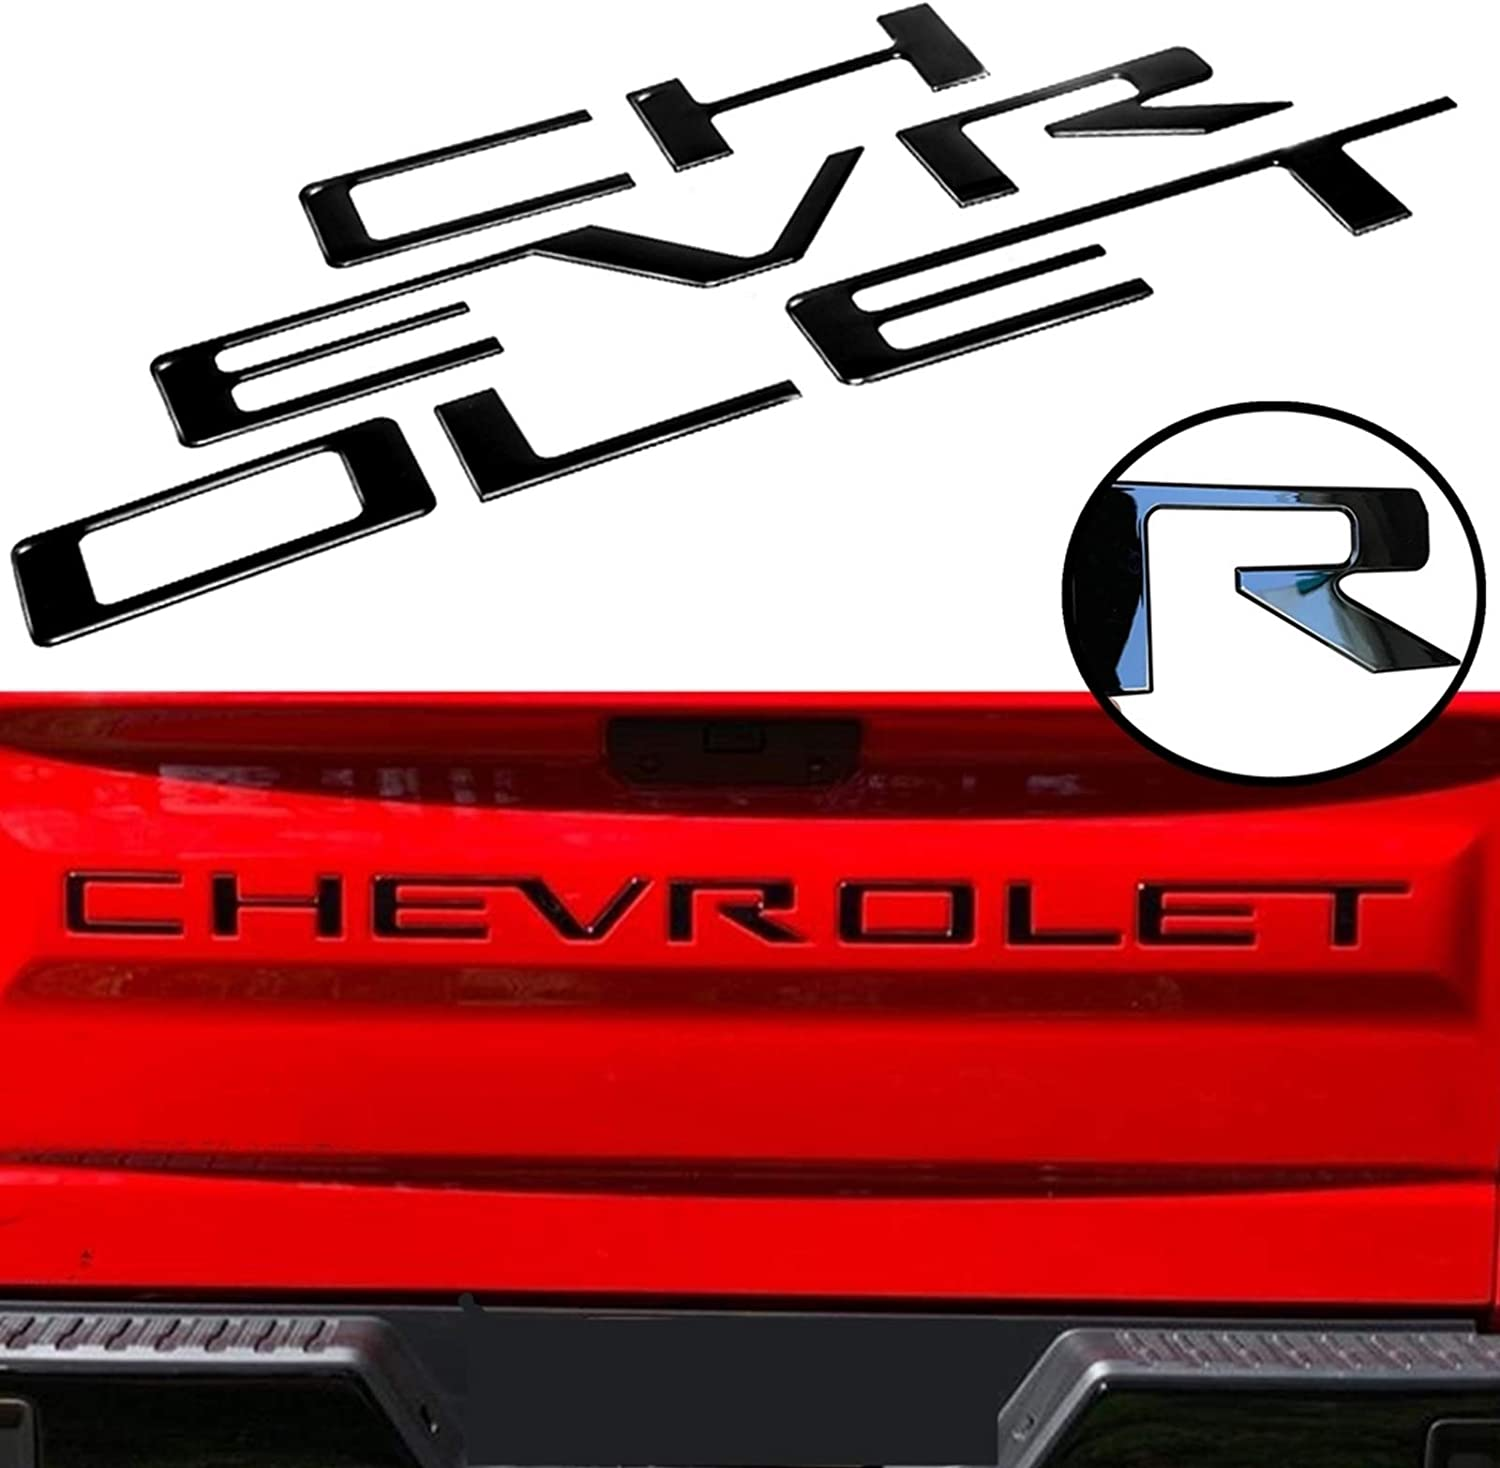 3D Raised /& Strong Adhesive Decals Letters Tailgate Emblems Inserts Letters Mr Udinese Tailgate Inserts Letters Compatible with 2019 2020 Chevrolet Silverado Red